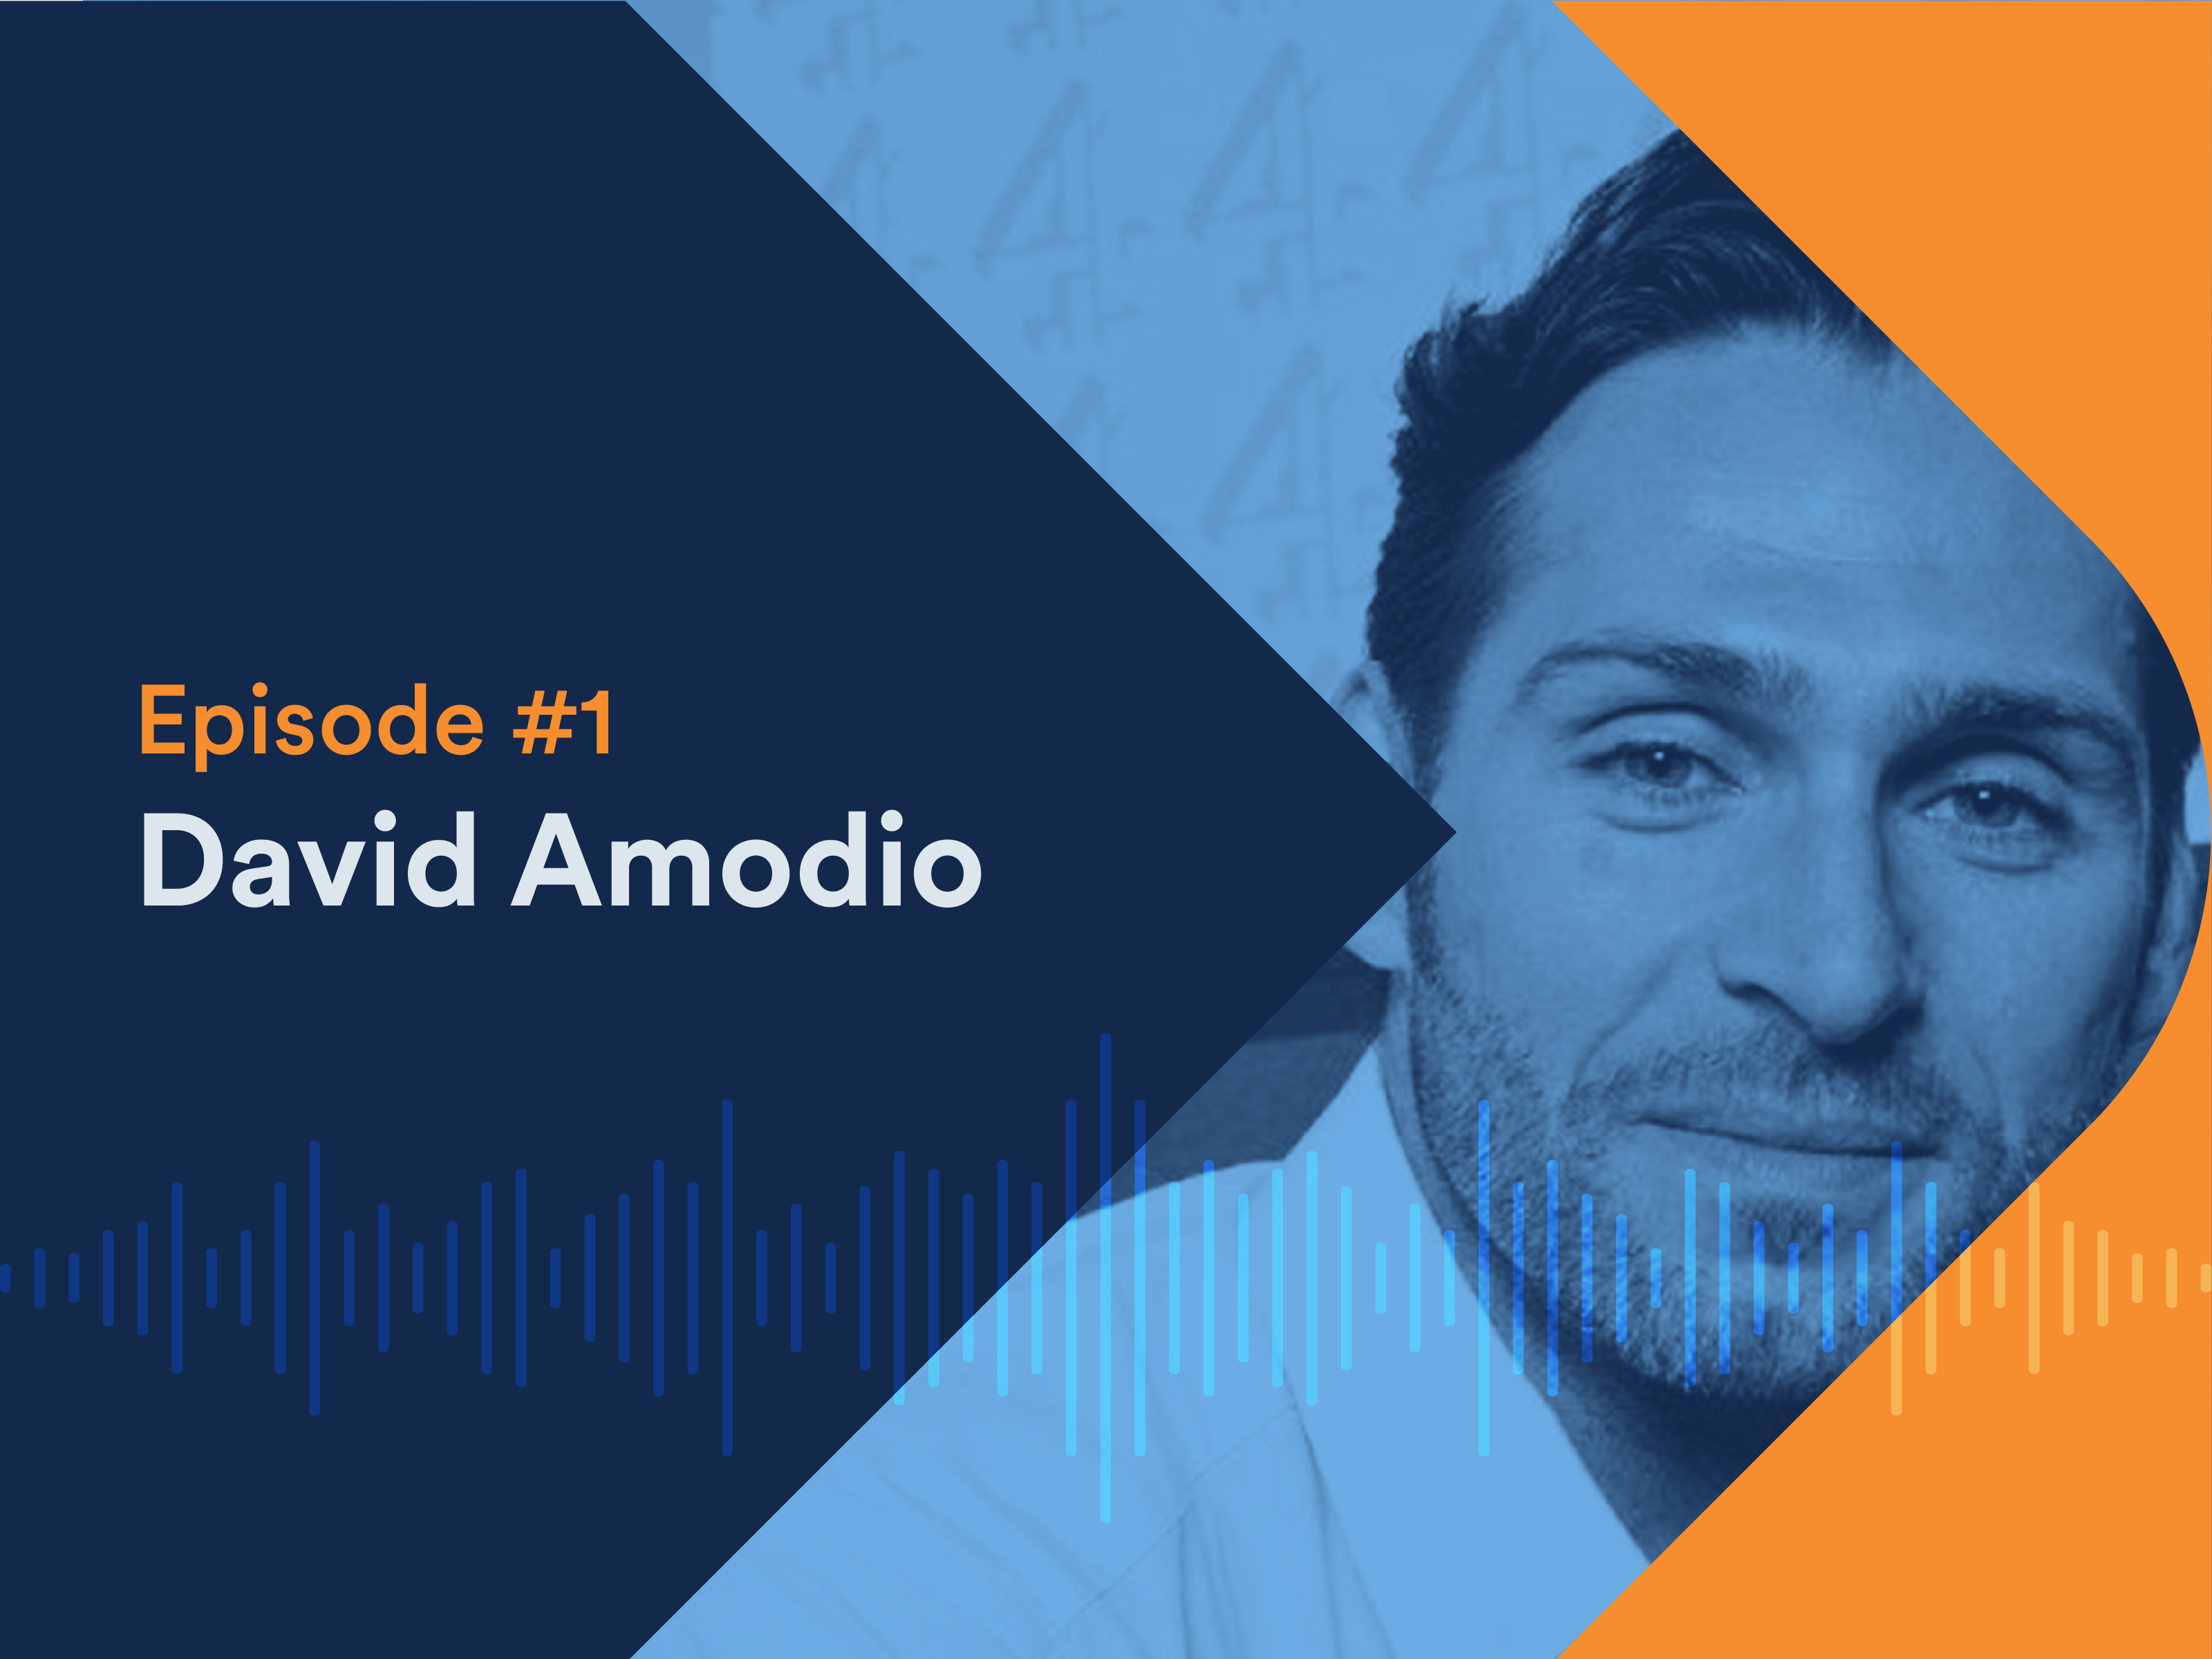 David Amodio, Channel 4: There's a need to evolve and change